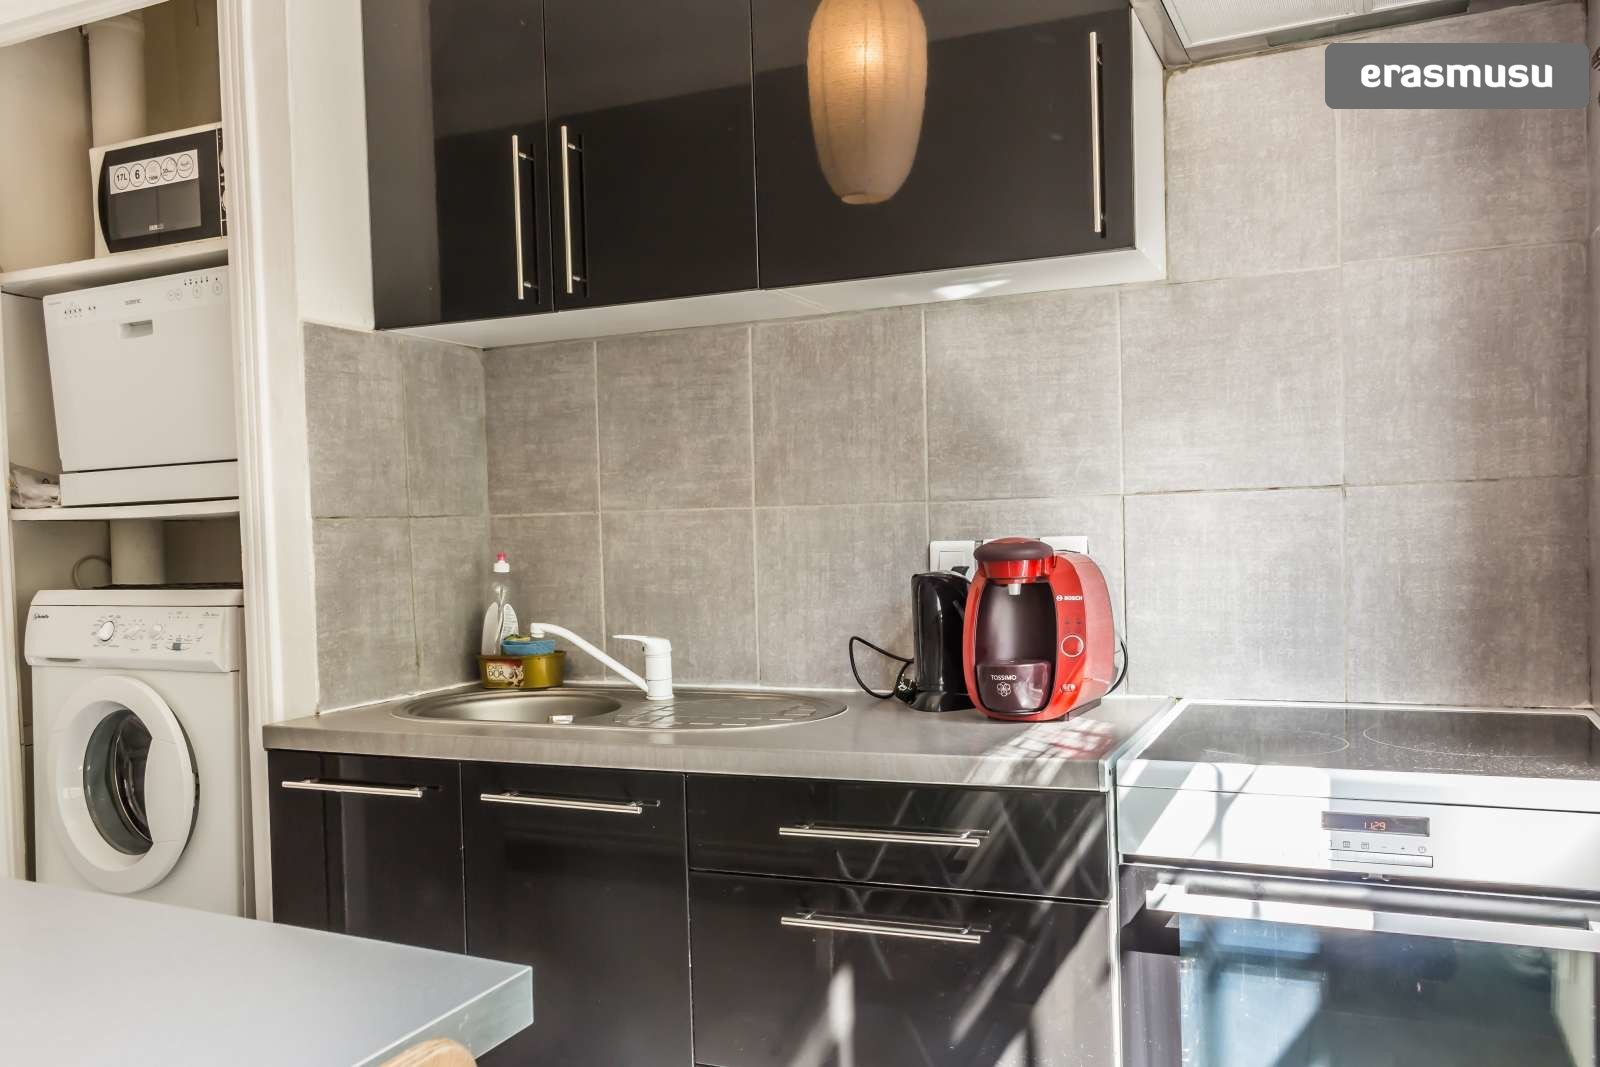 luxurious-fully-furnished-1-bedroom-apartment-rent-5332010760486